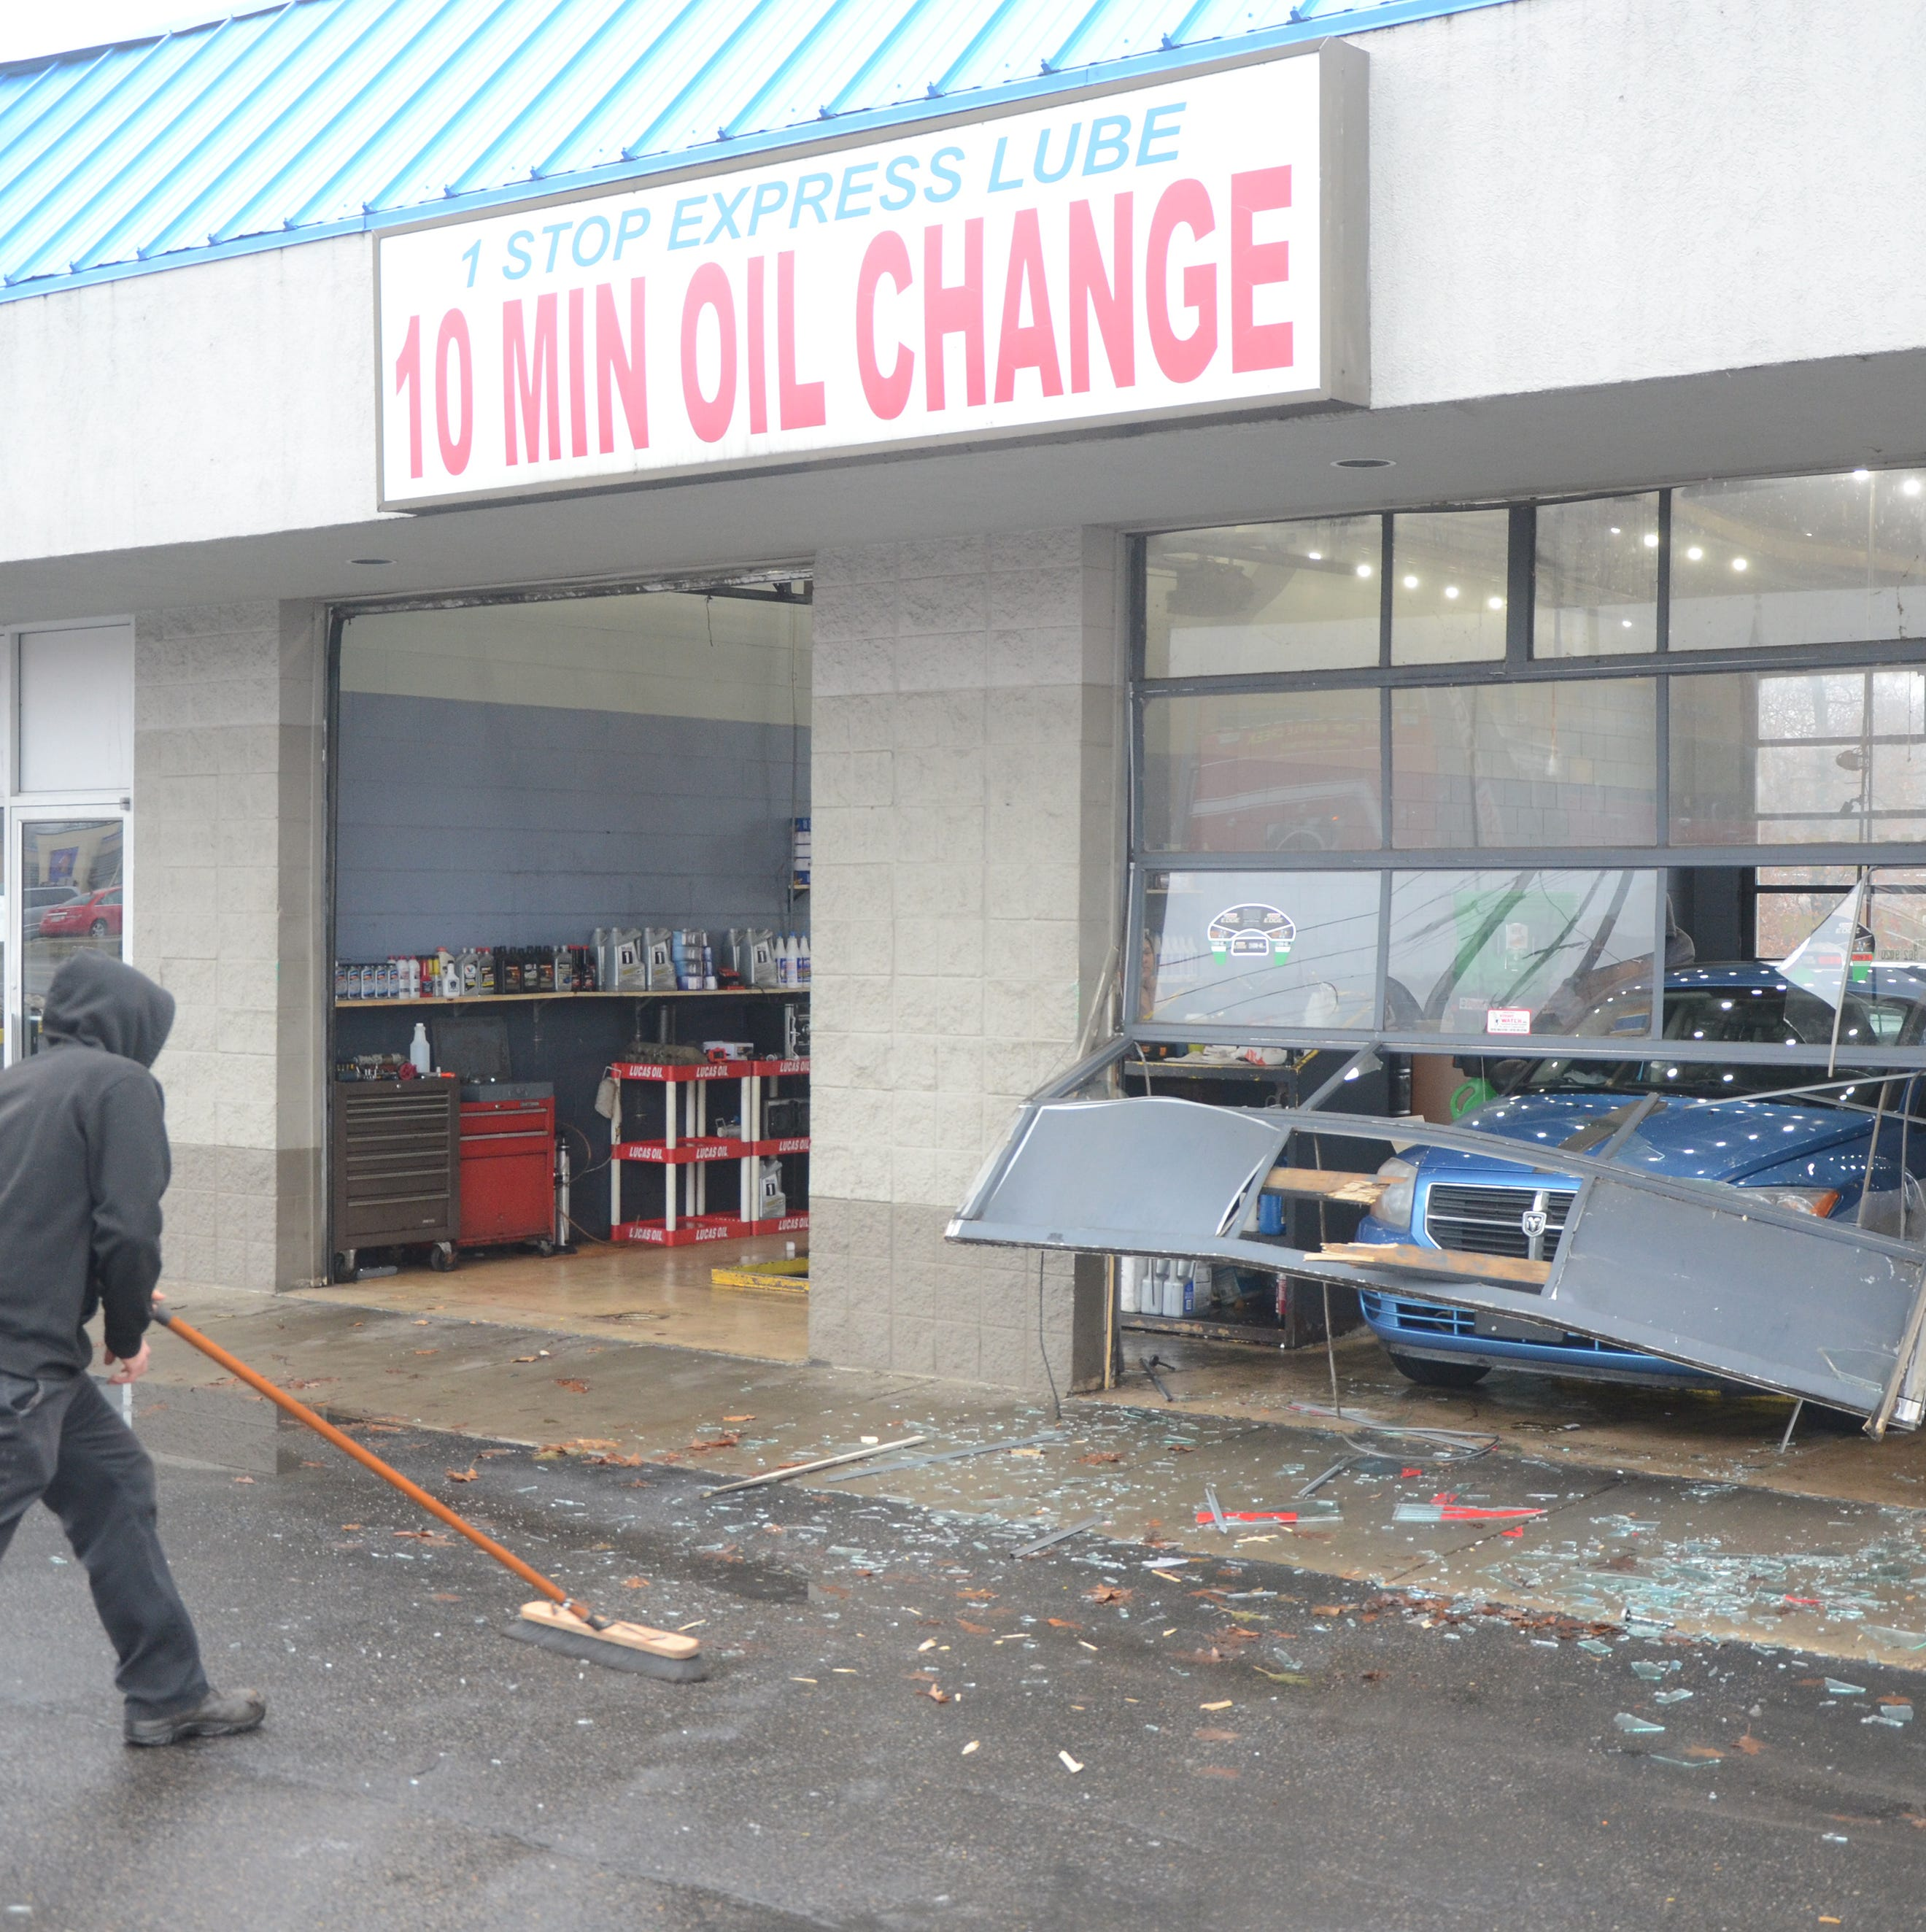 Police & Fire: Man injured after being hit by vehicle inside oil change business